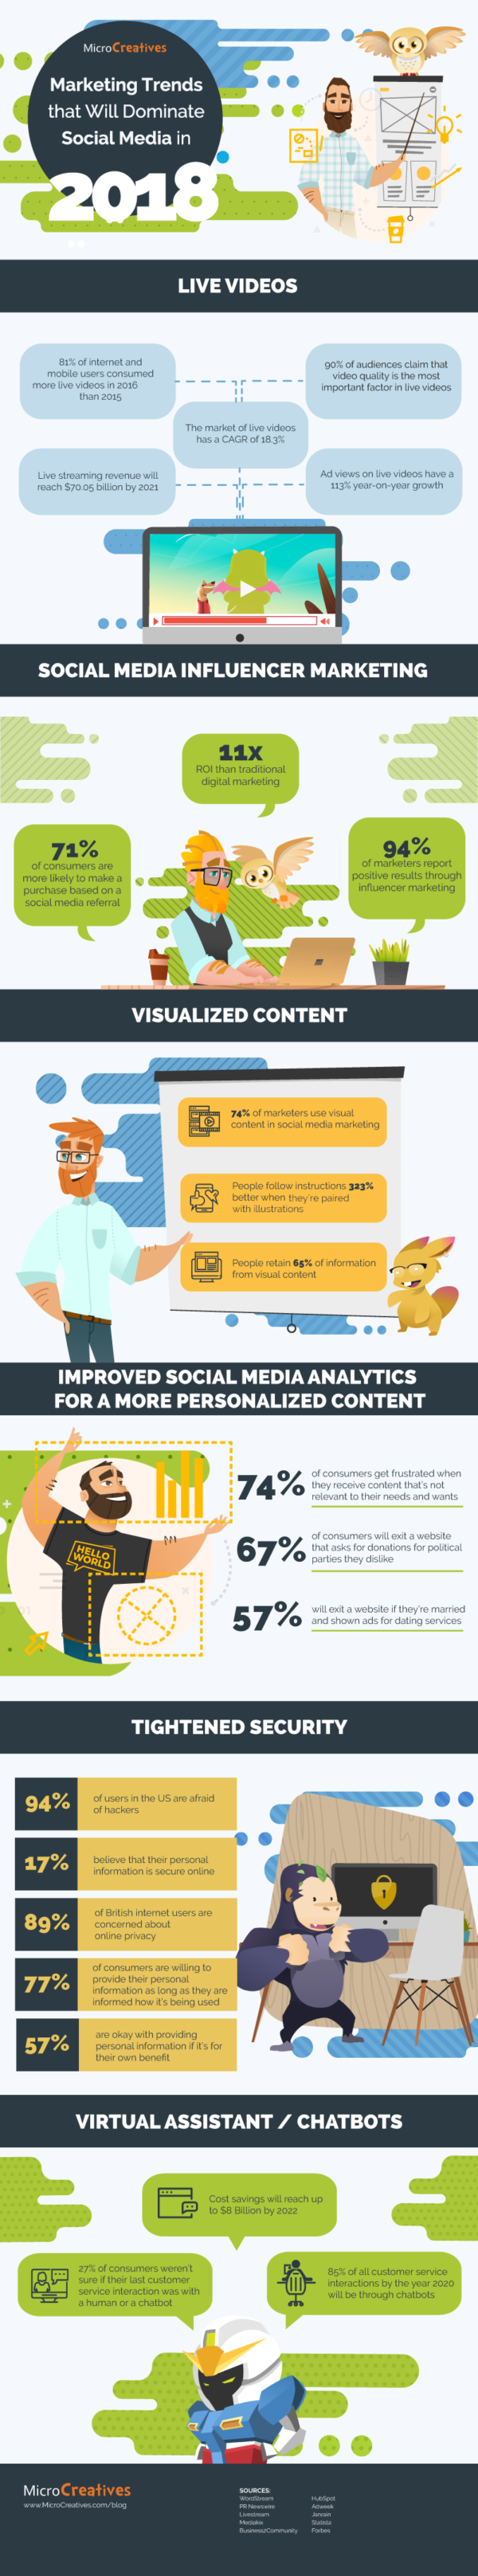 2018 Social Media Marketing Trends Infographic